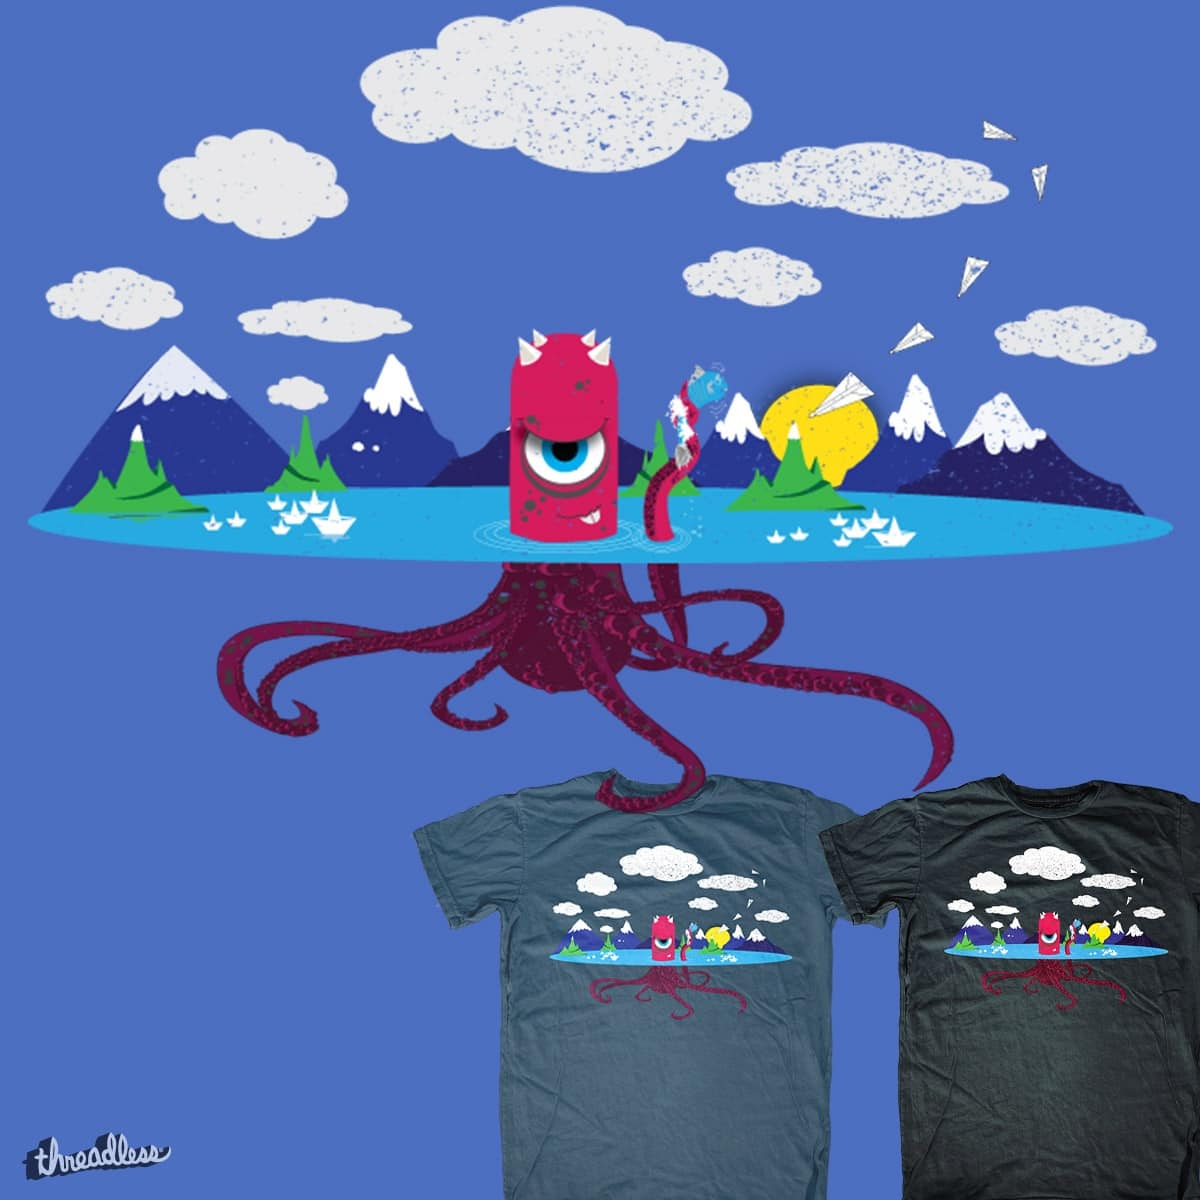 Octopass by venoxy on Threadless